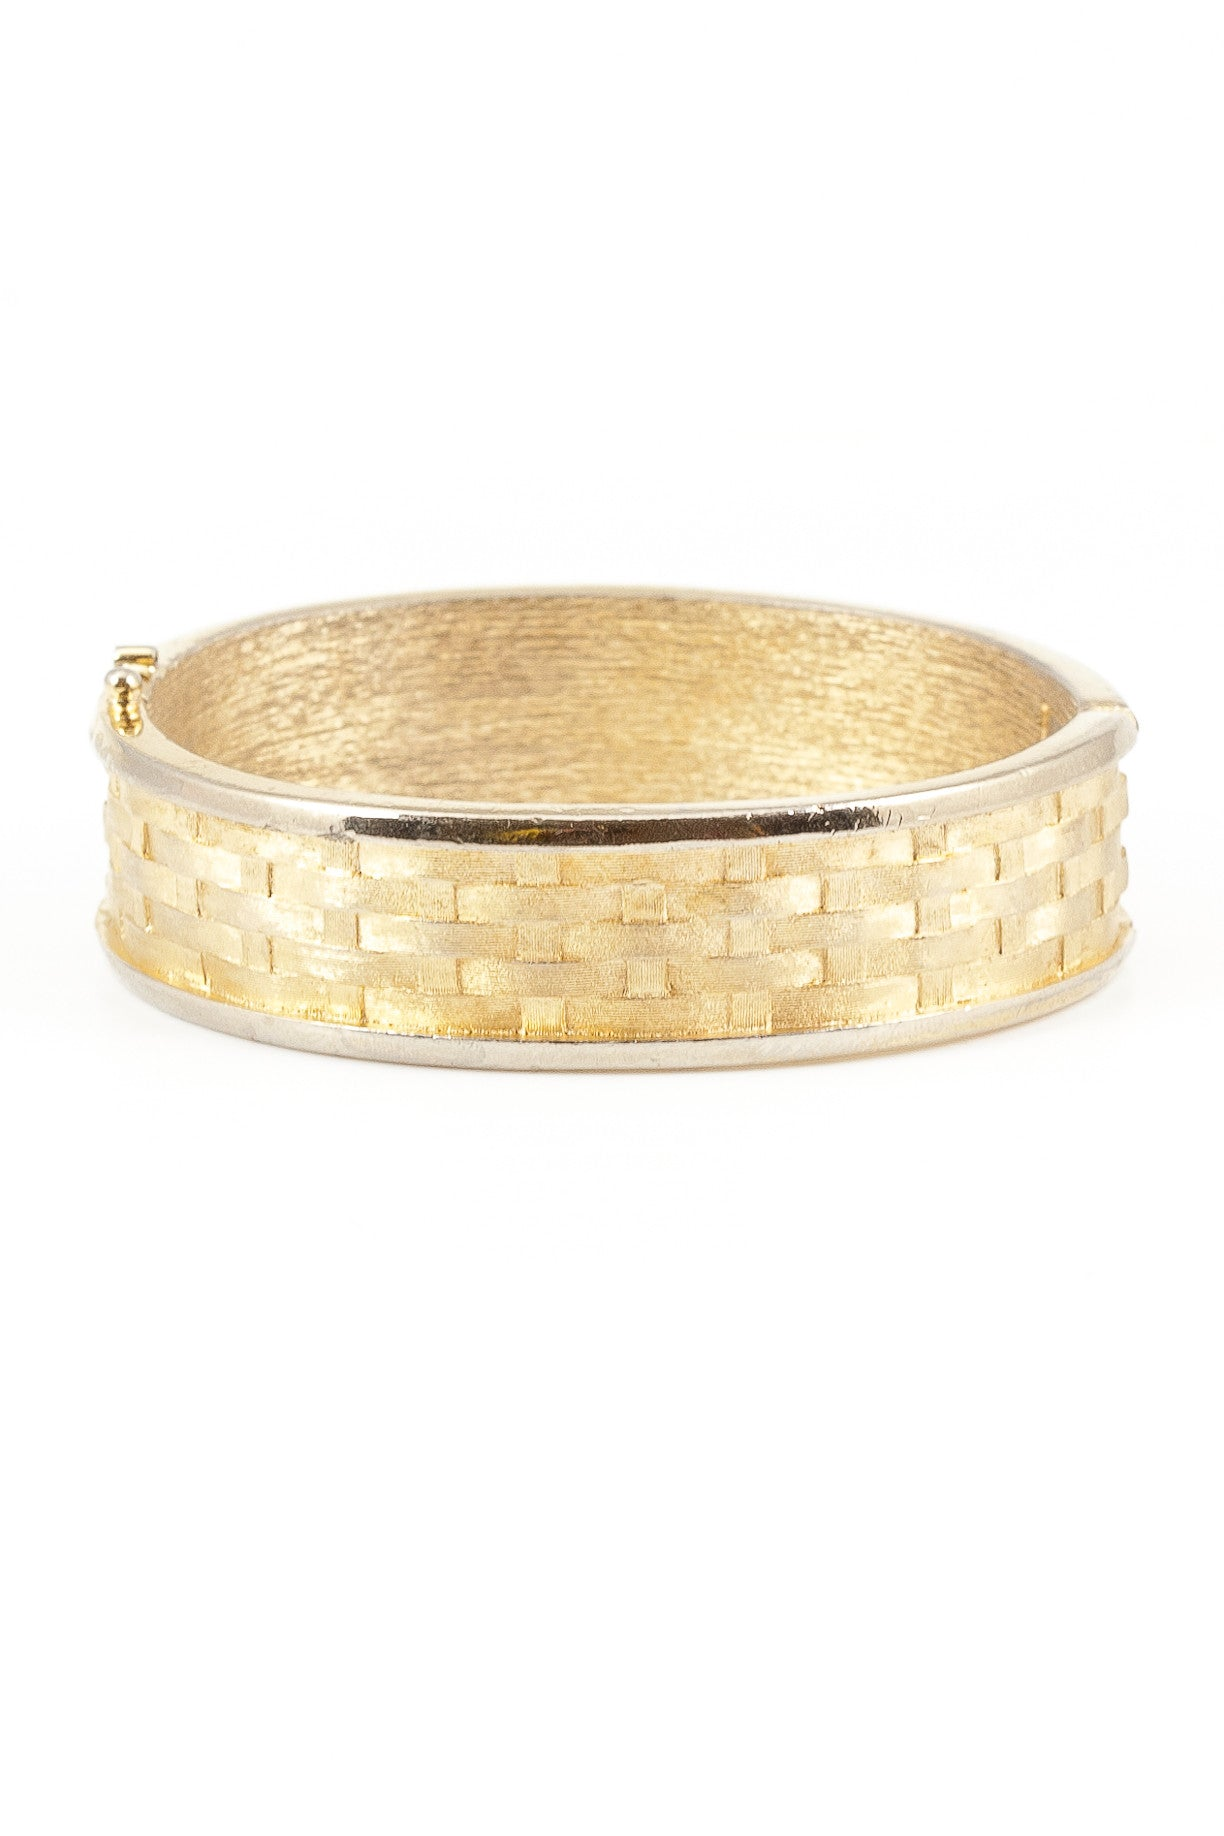 70's__Vintage__Basket Weave Bangle